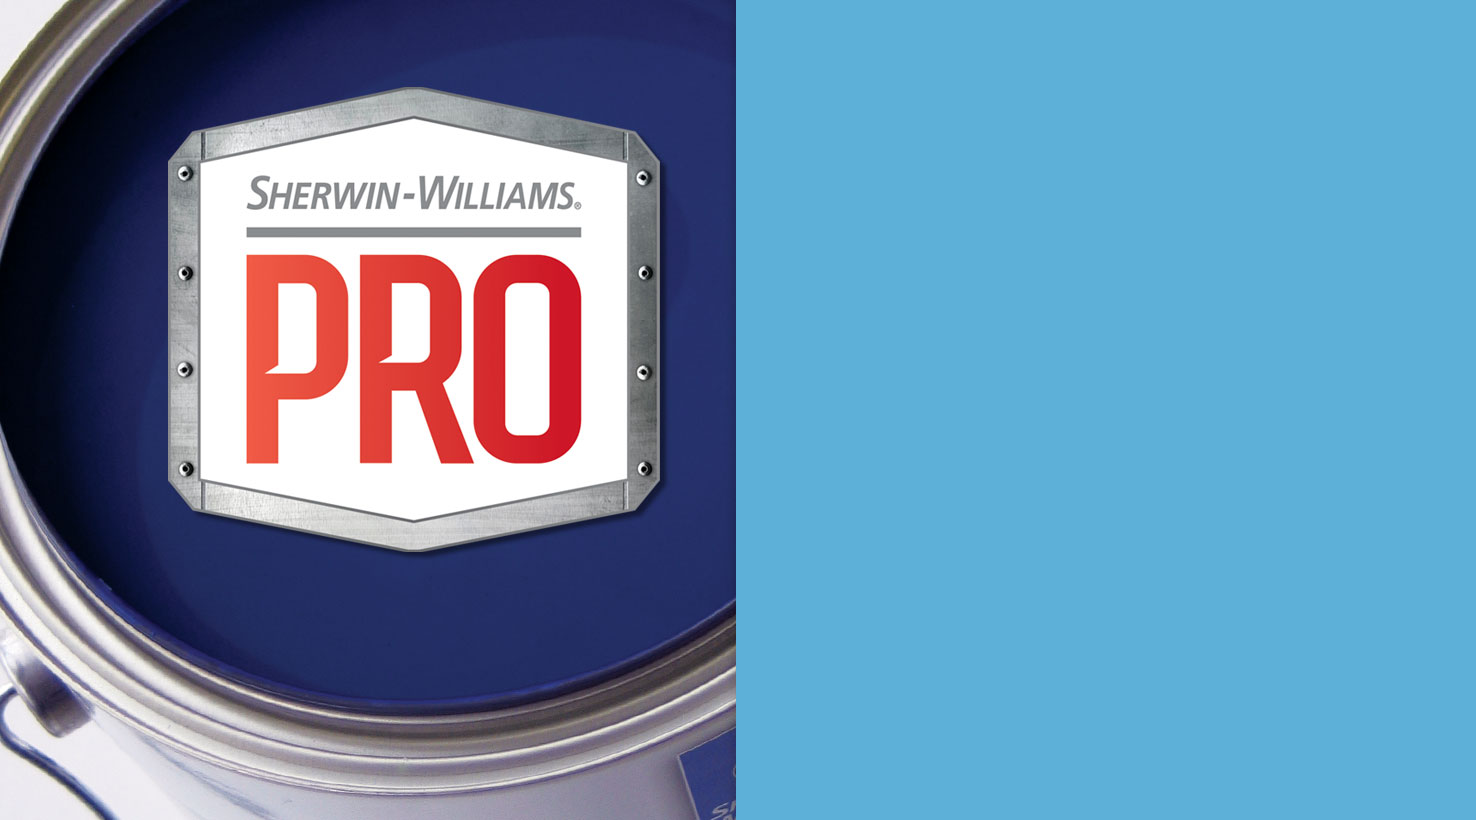 Sherwin Williams Provides Industry Leading Service And